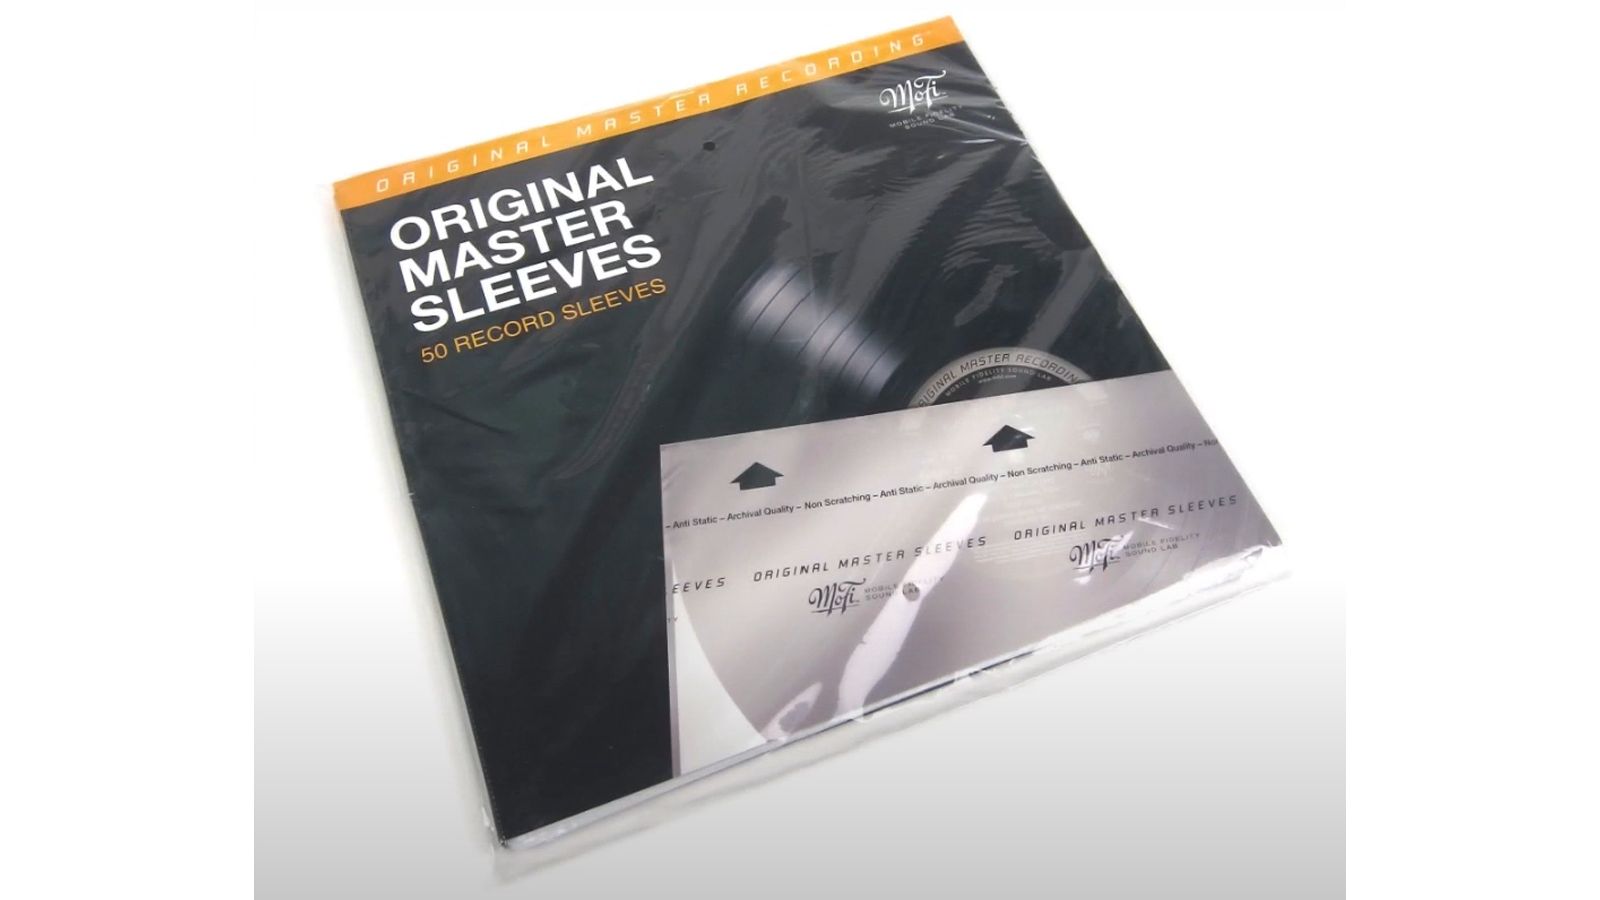 Mobile Fidelity Original Master Inner Sleeves pack of 50 for protecting your records